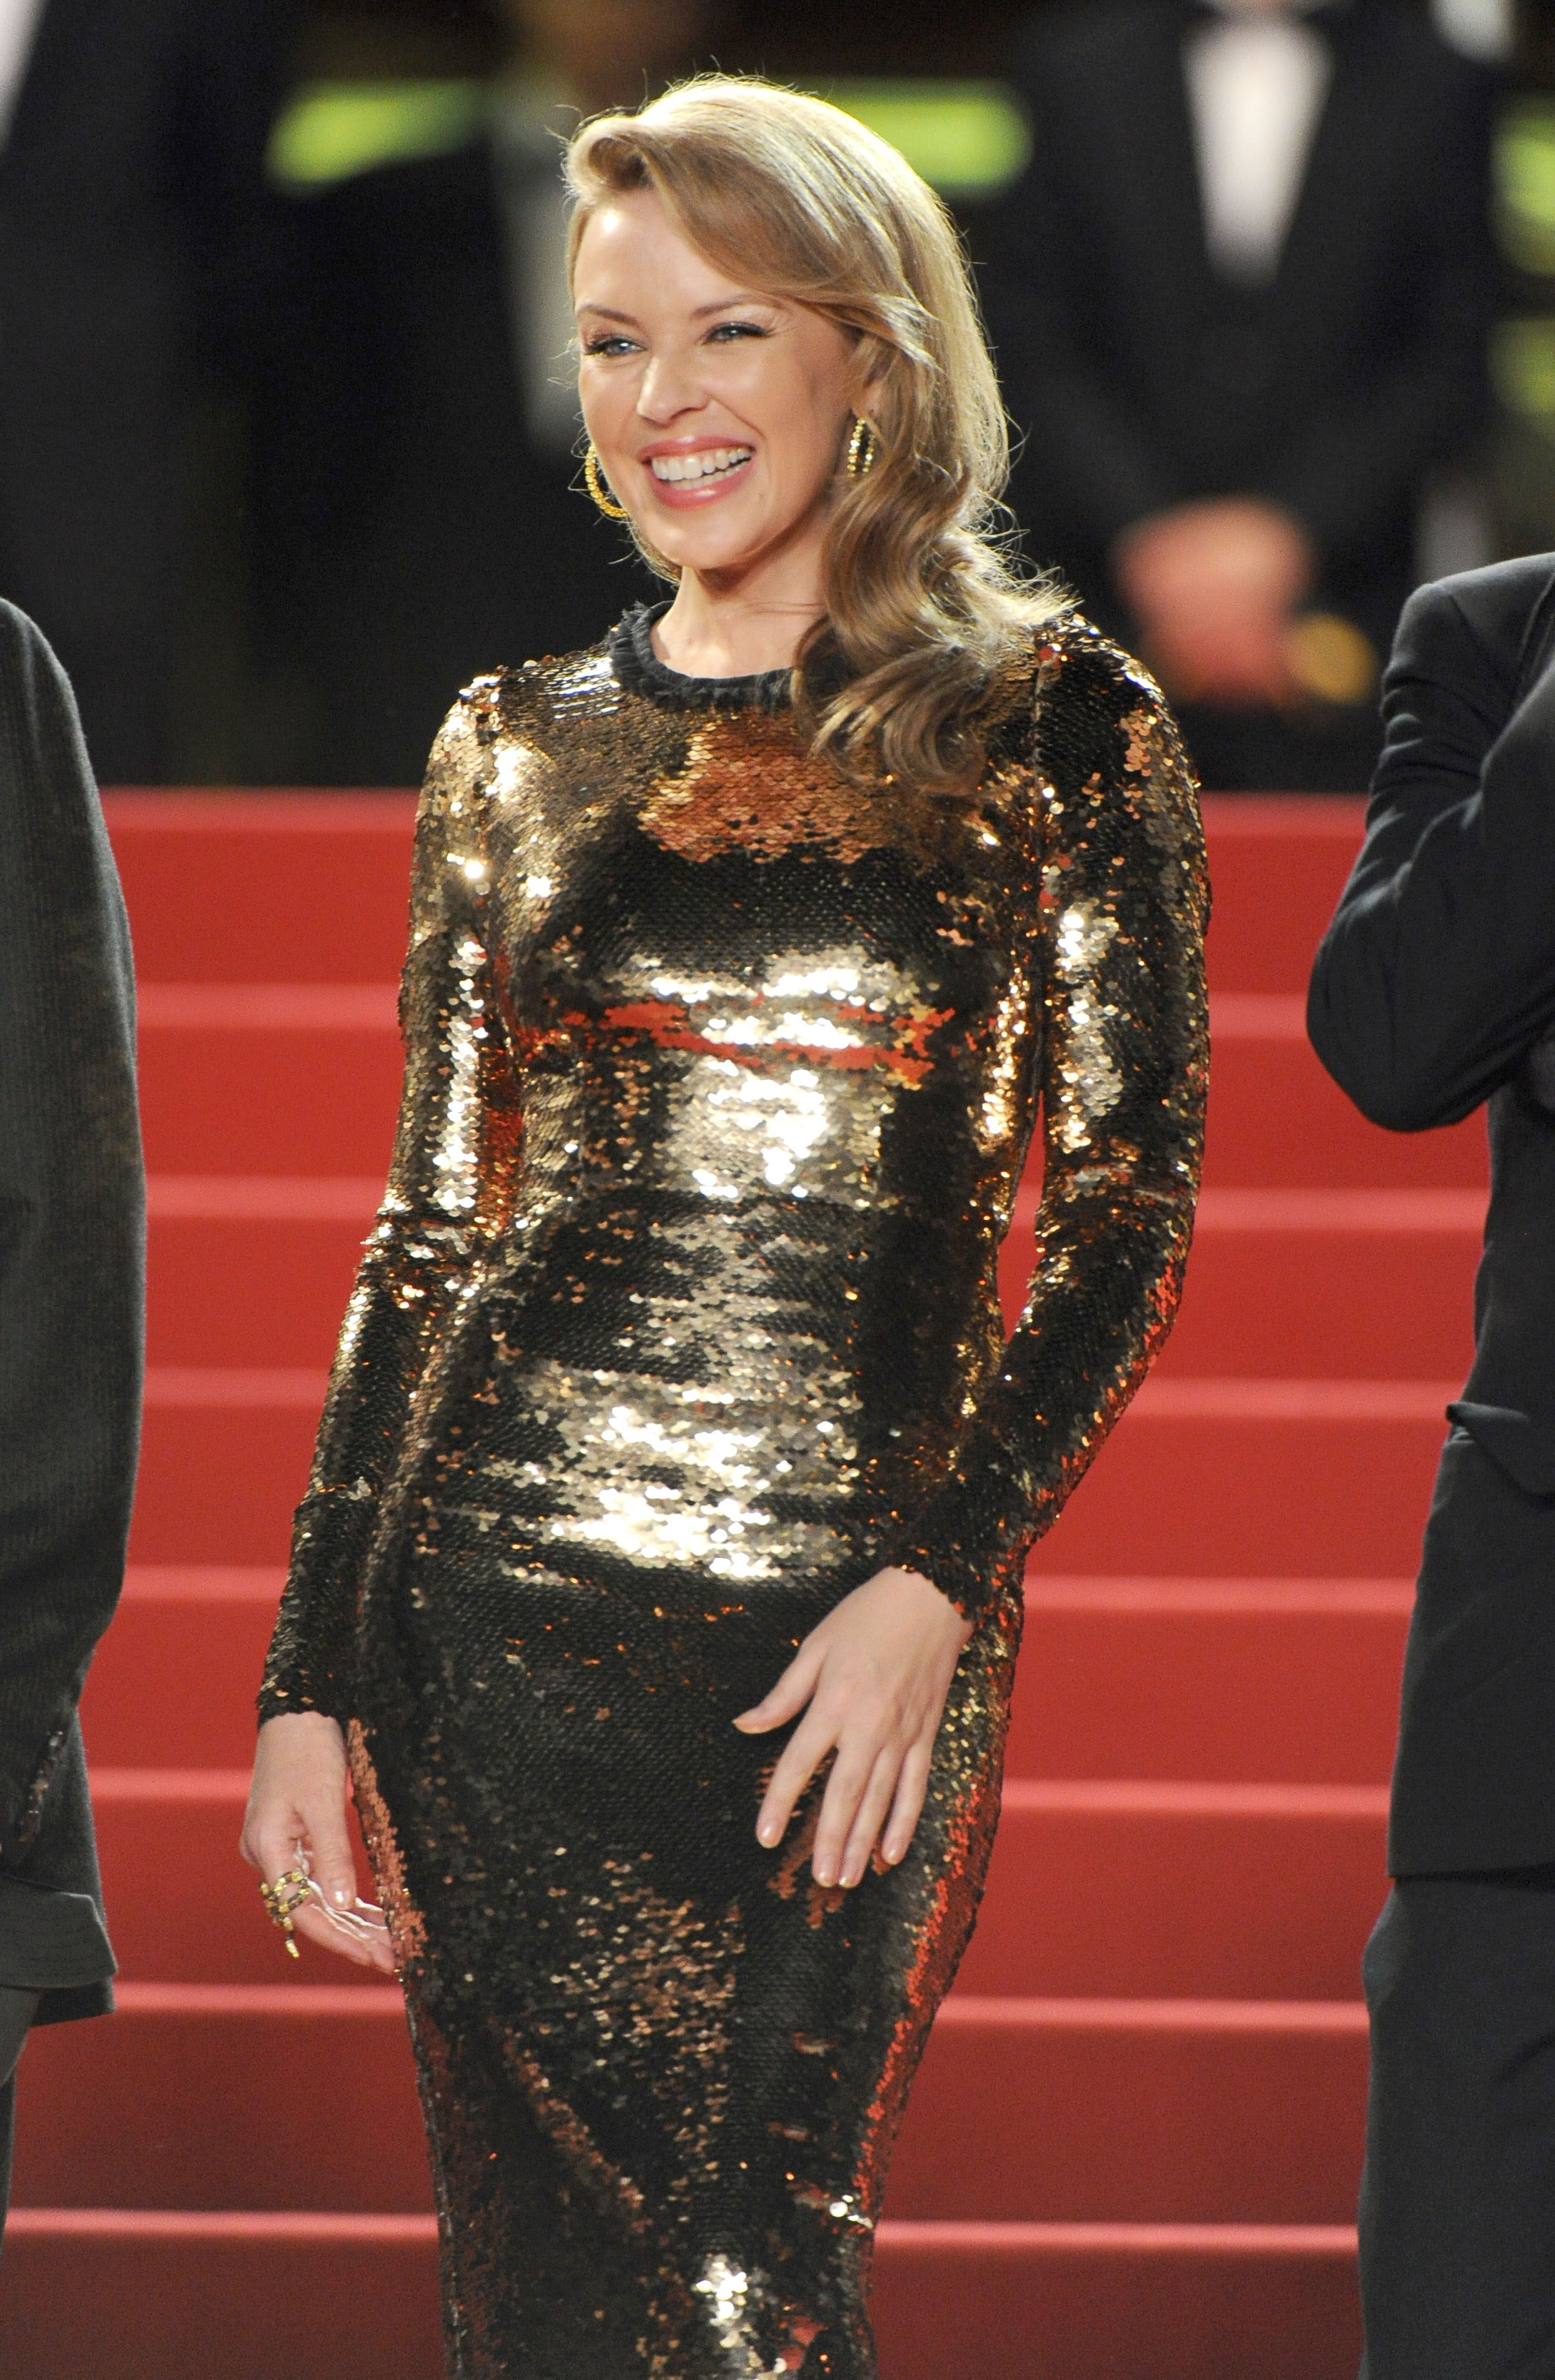 Kylie Minogue dazzles at Holy Motors premiere before dinner date with Andres Velencoso